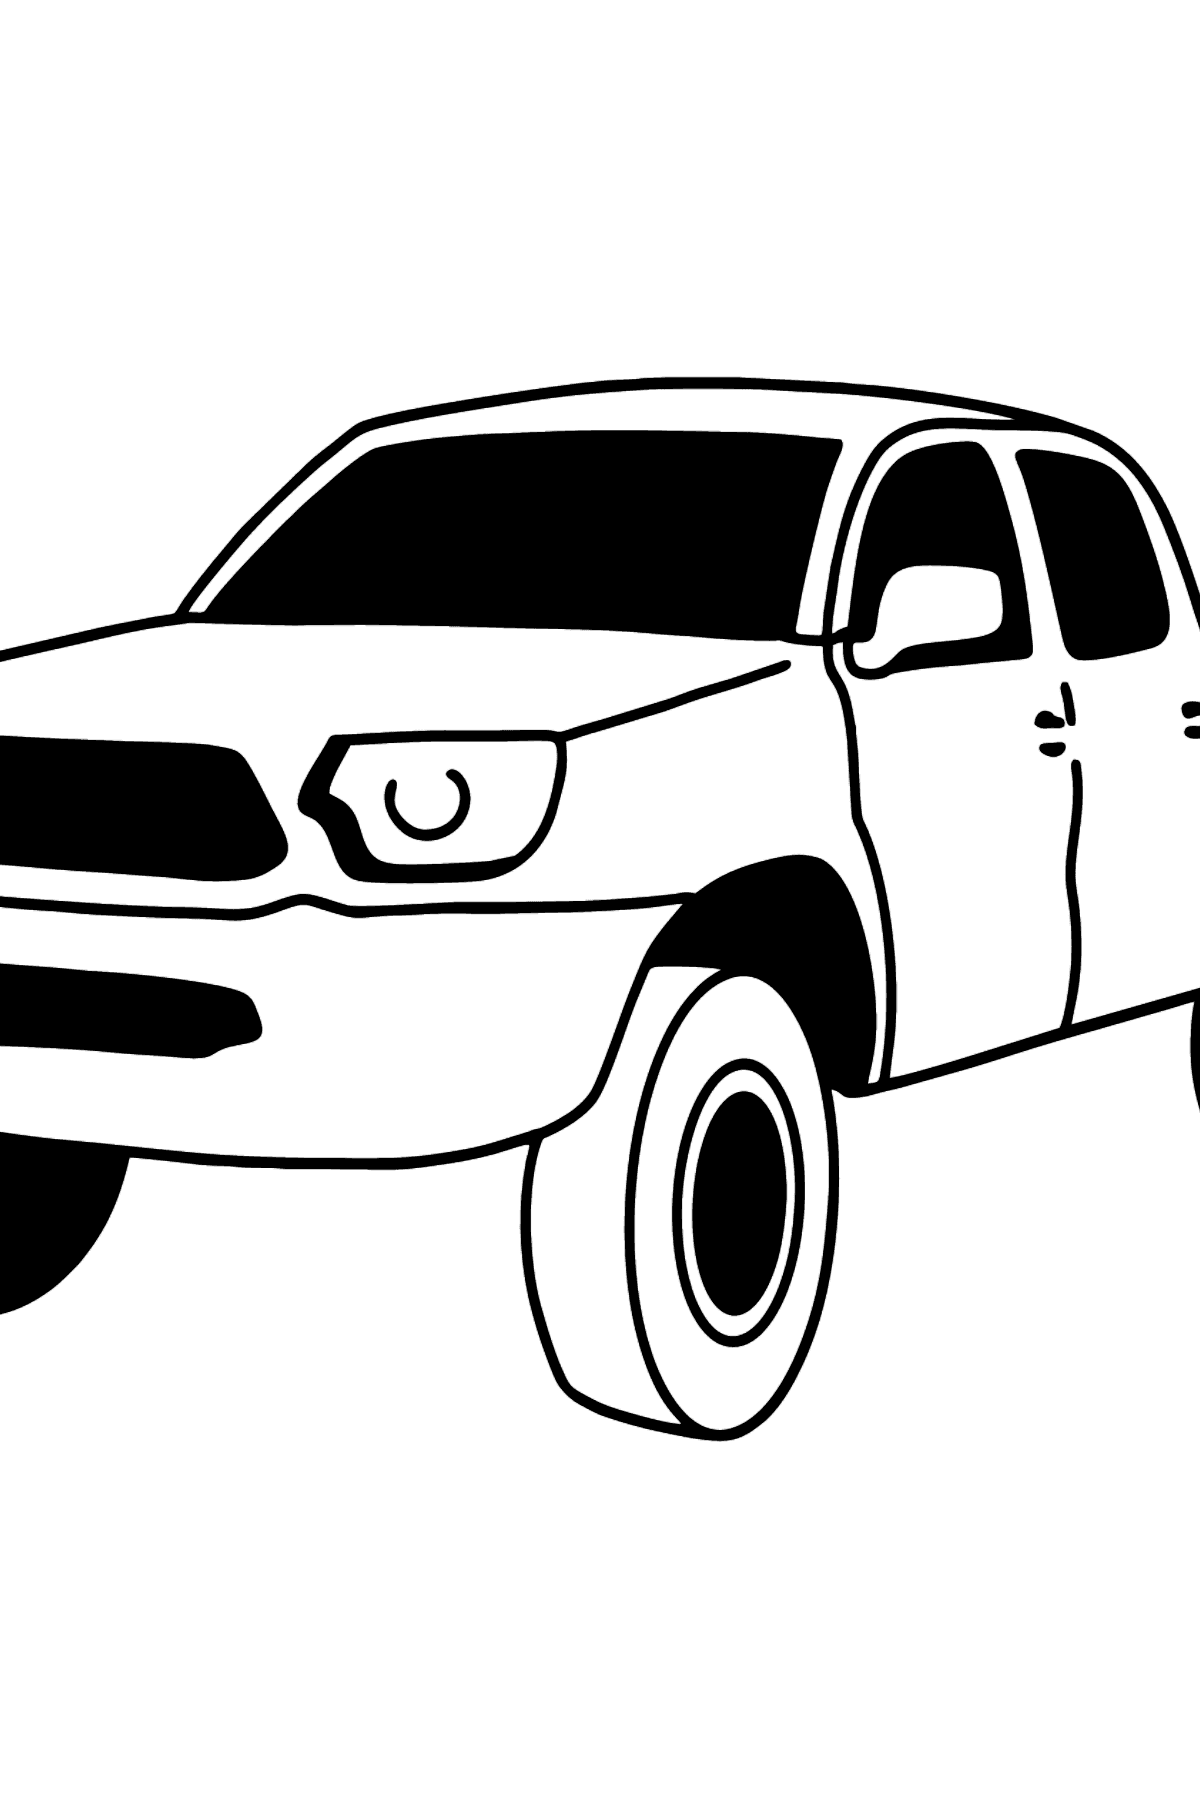 Toyota Tacoma Pickup Truck coloring page - Coloring Pages for Kids